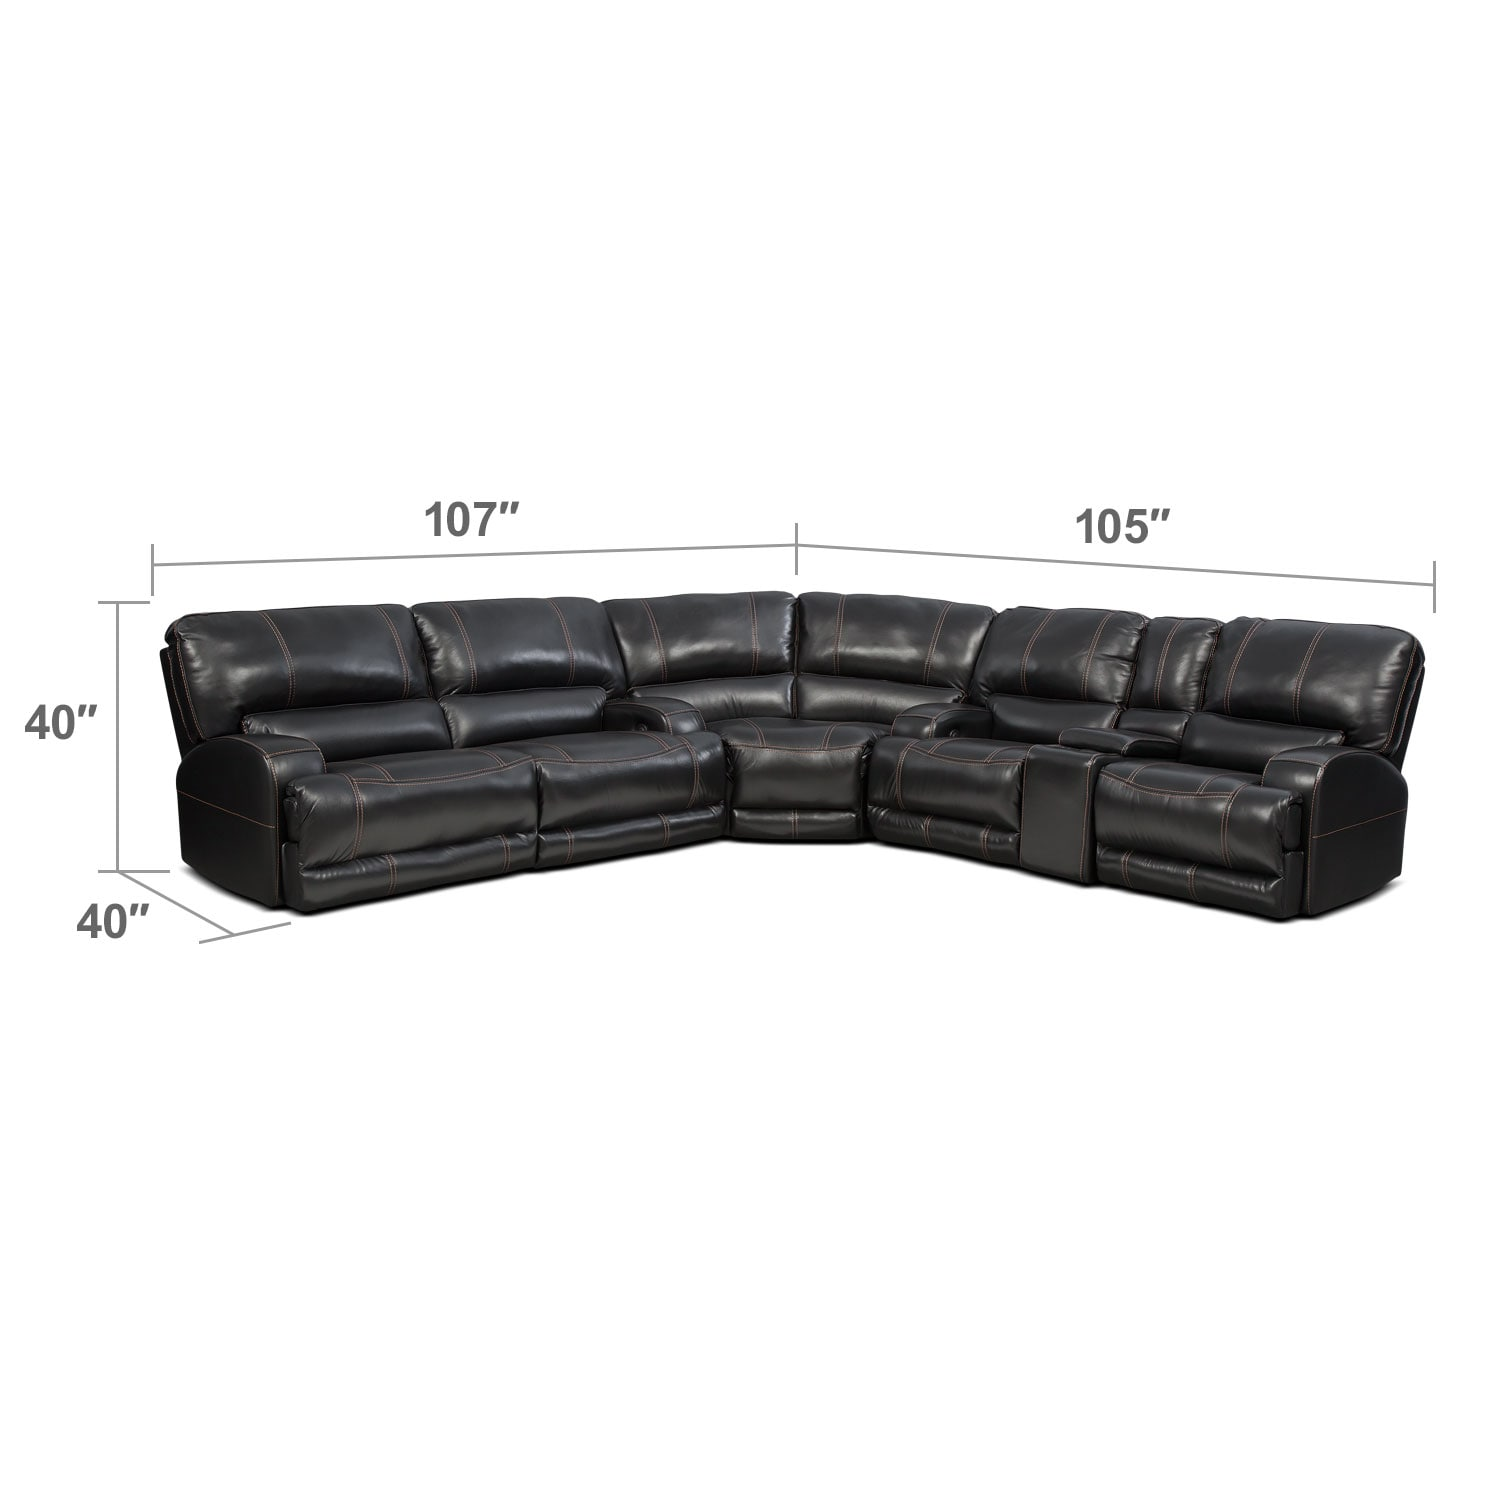 Living Room Furniture - Barton Black 3 Pc. Power Reclining Sectional with Left-Facing Sofa